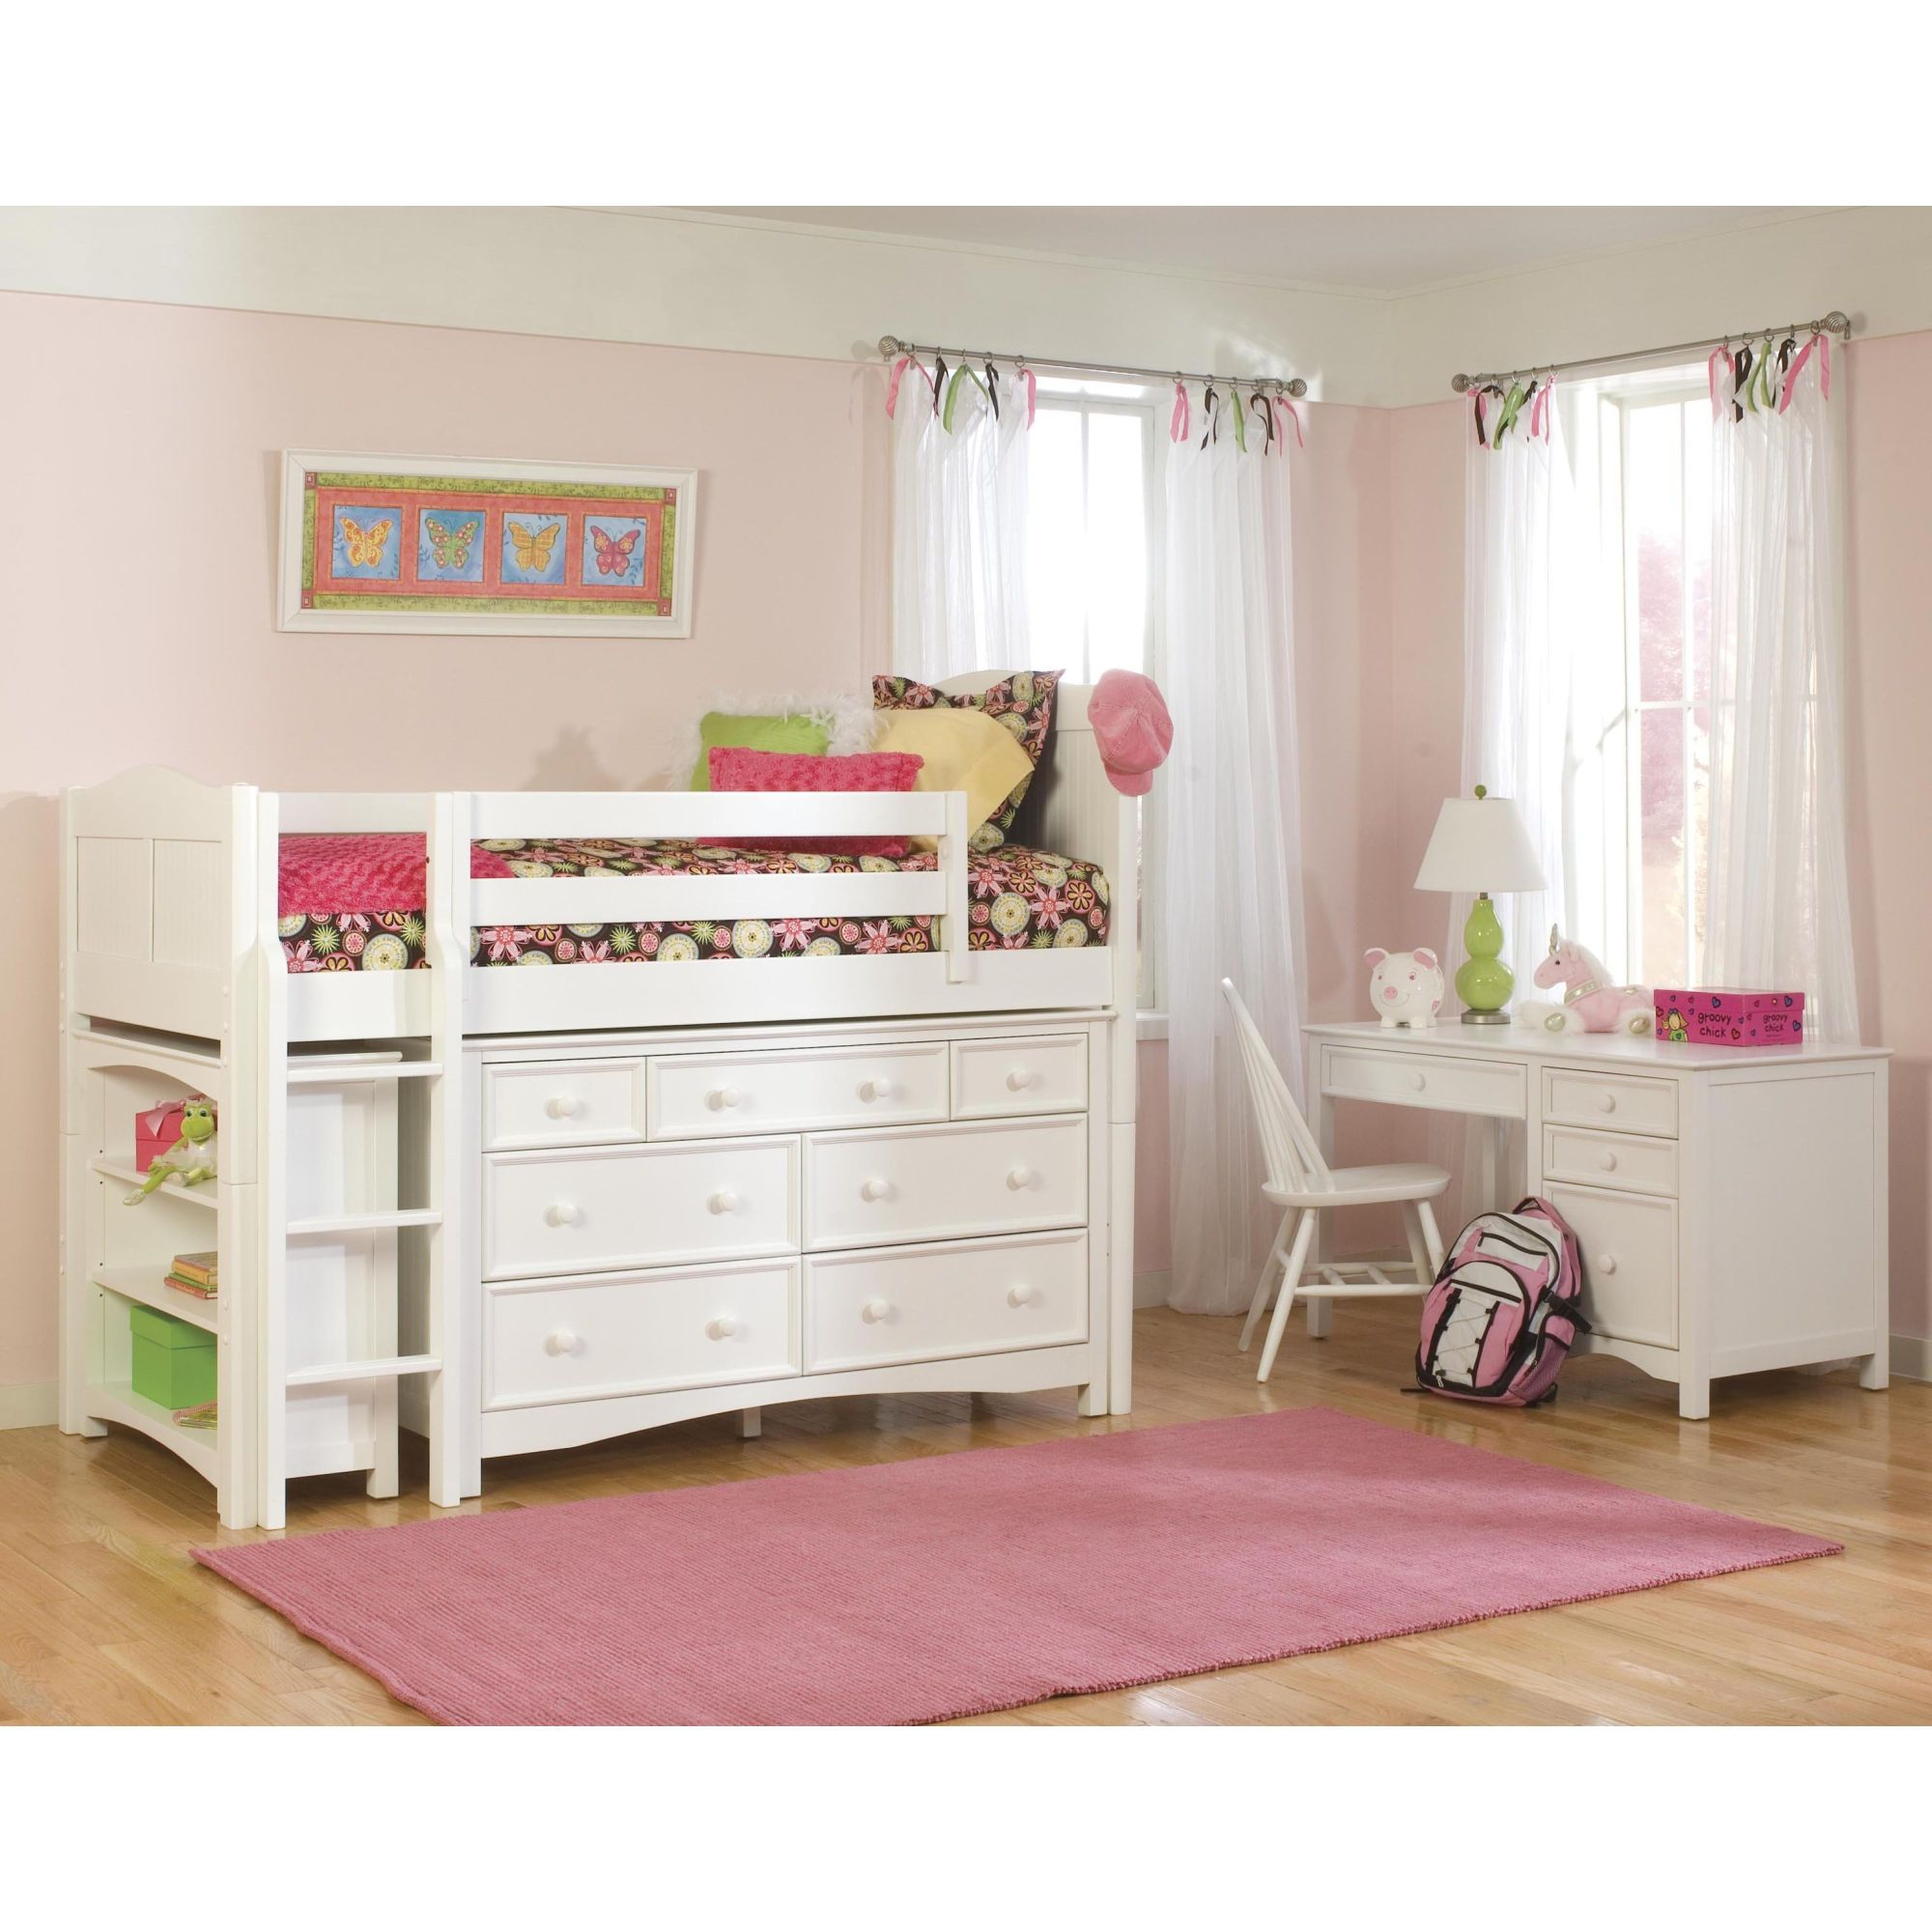 Loft bedroom storage ideas  This would be awesome for a kids bedroom Would save soooo much